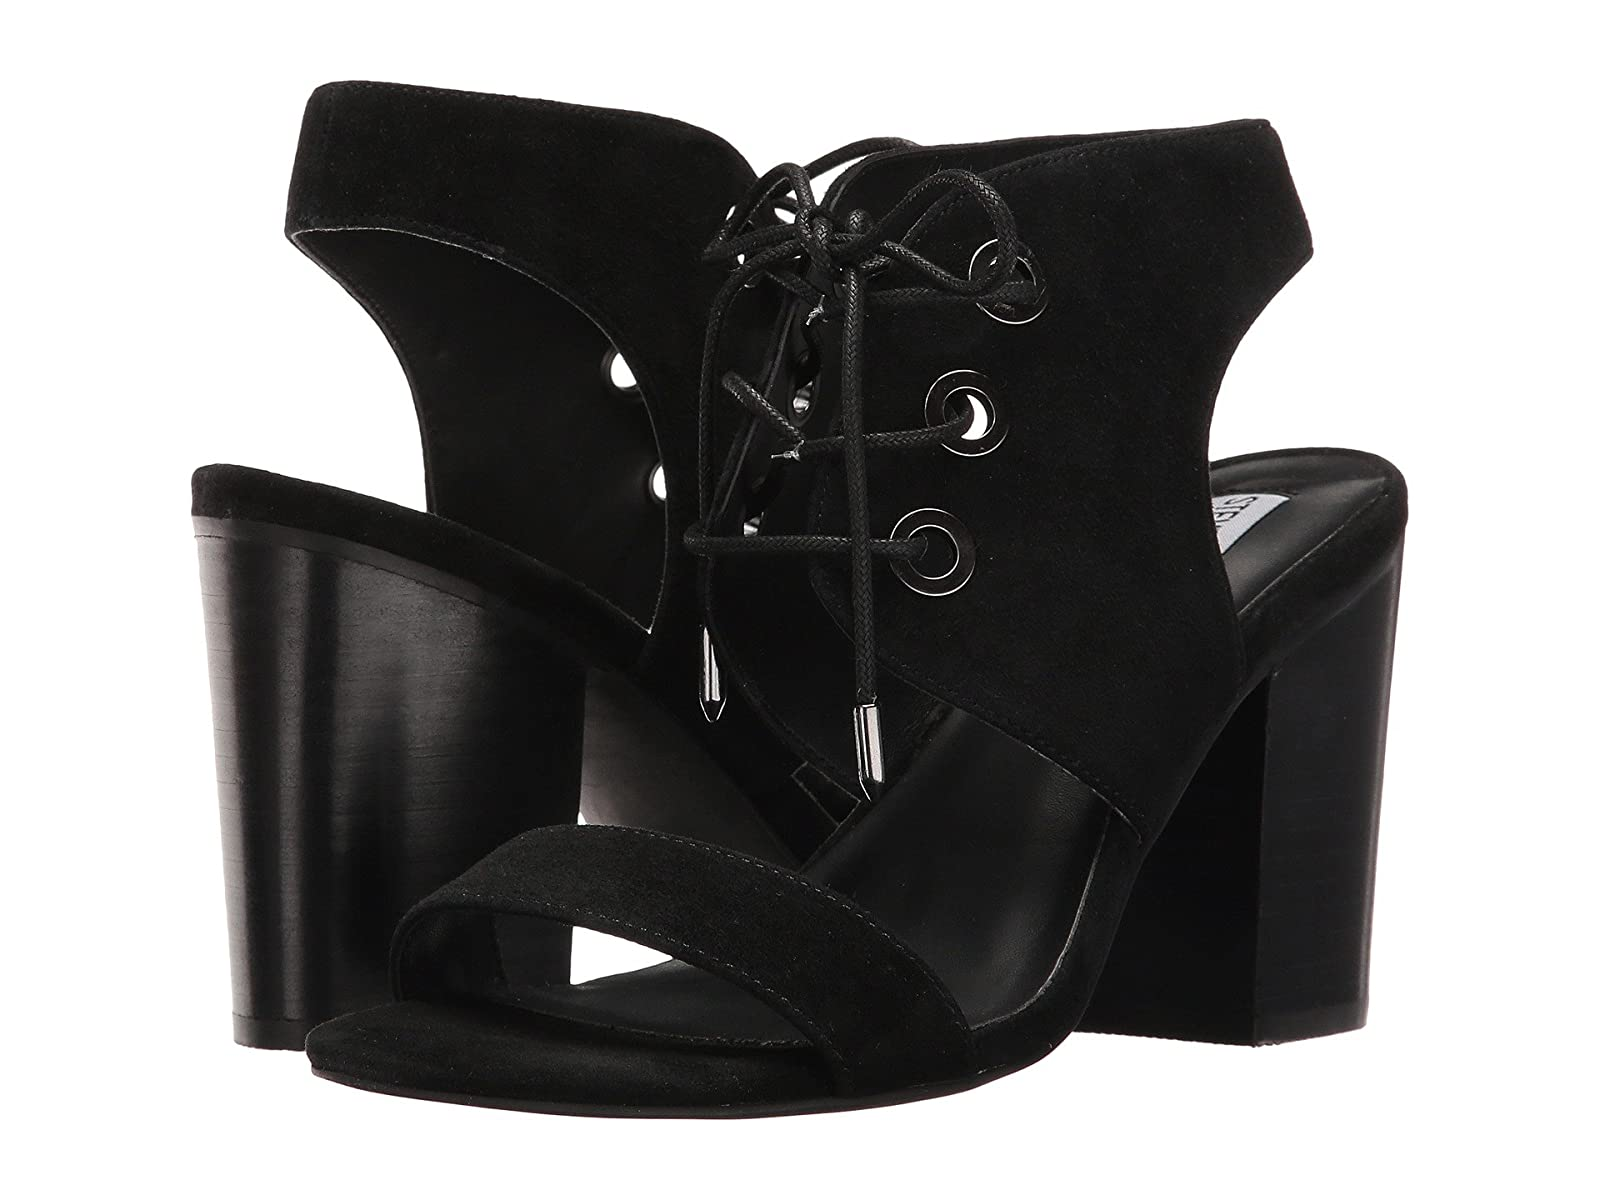 Steve Madden ElginCheap and distinctive eye-catching shoes